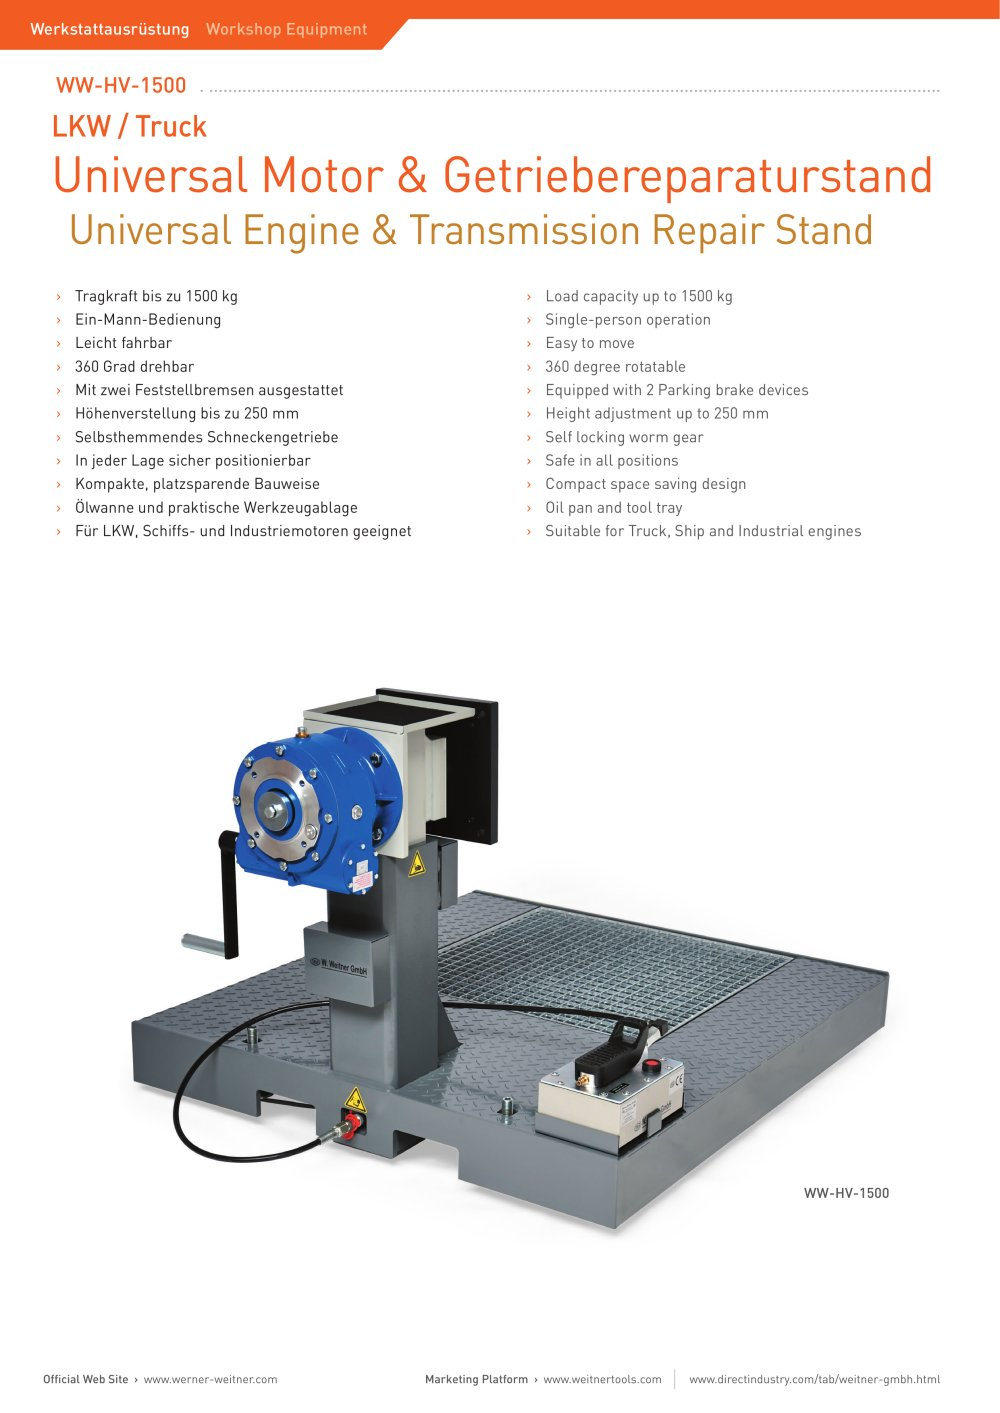 Universal engine transmission repair stand 1 1 2 pages